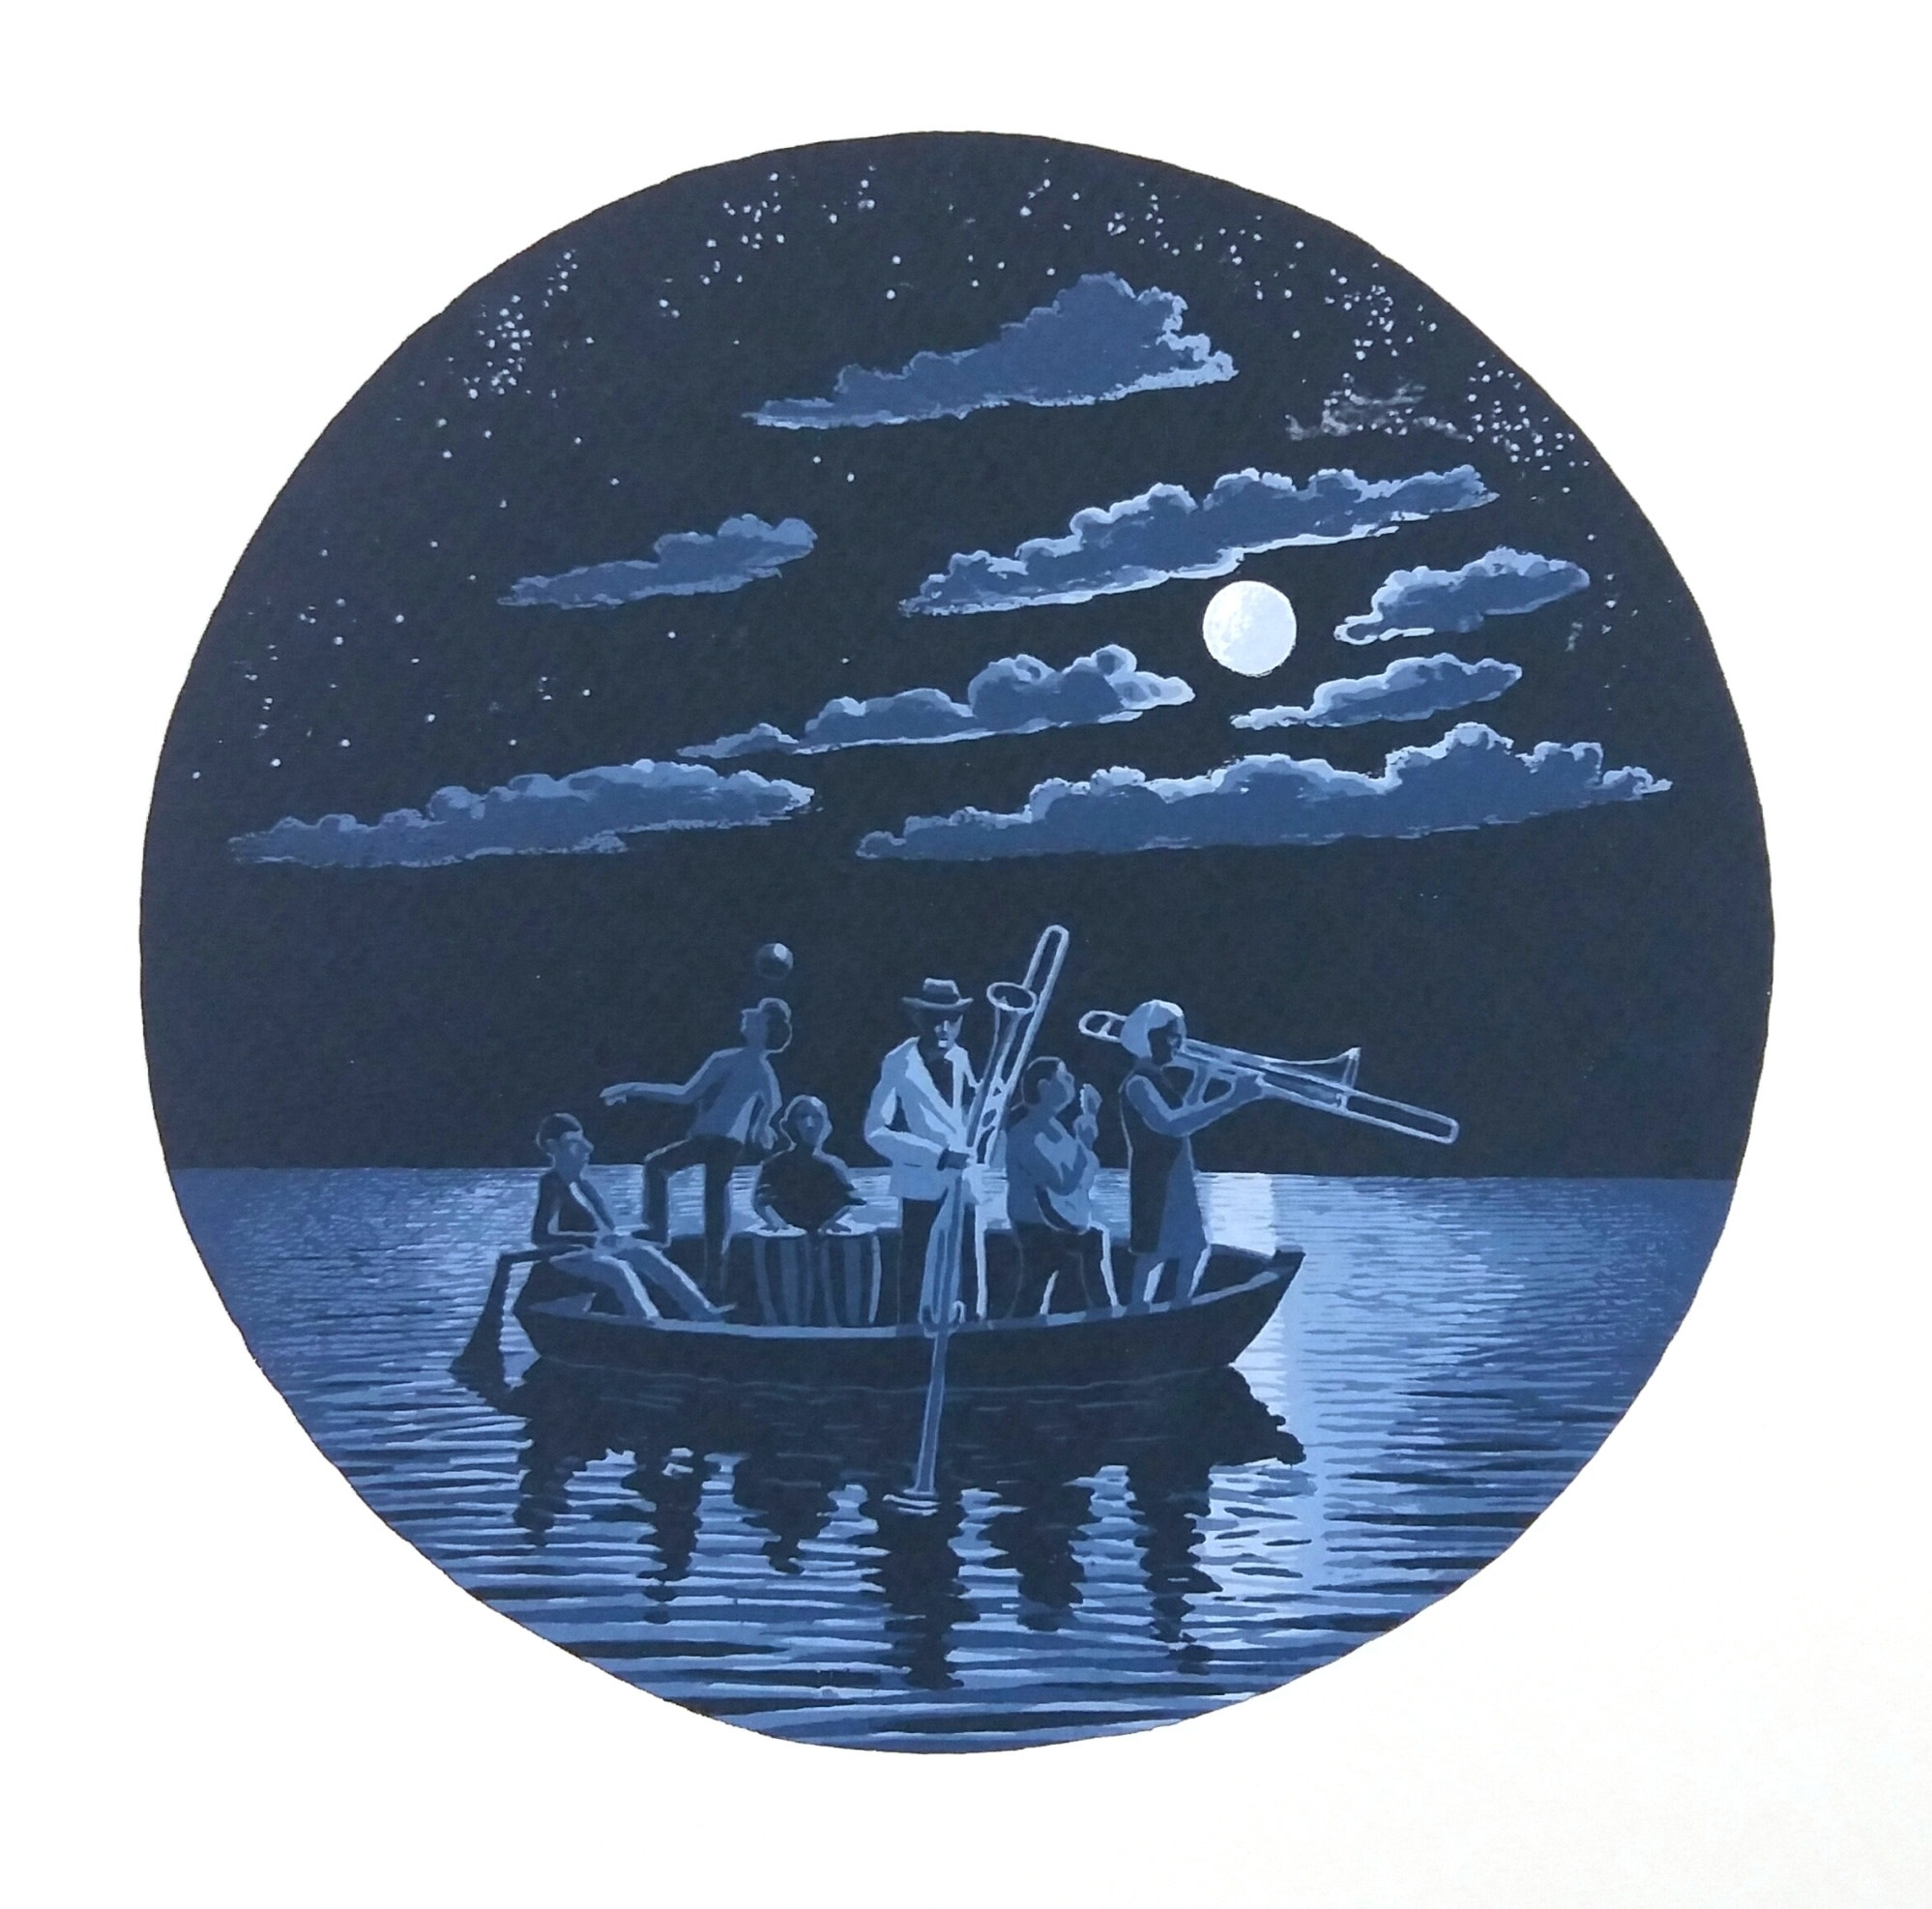 """<span class=""""link fancybox-details-link""""><a href=""""/exhibitions/17/works/image_standalone692/"""">View Detail Page</a></span><p><strong>Martin Grover</strong></p><p>The Univited Guests (Night Boat to Sorrow)</p><p>screenprint, ed of 21</p><p>39 x 39cm</p><p>£280 framed</p><p>£210 unframed</p><p></p>"""